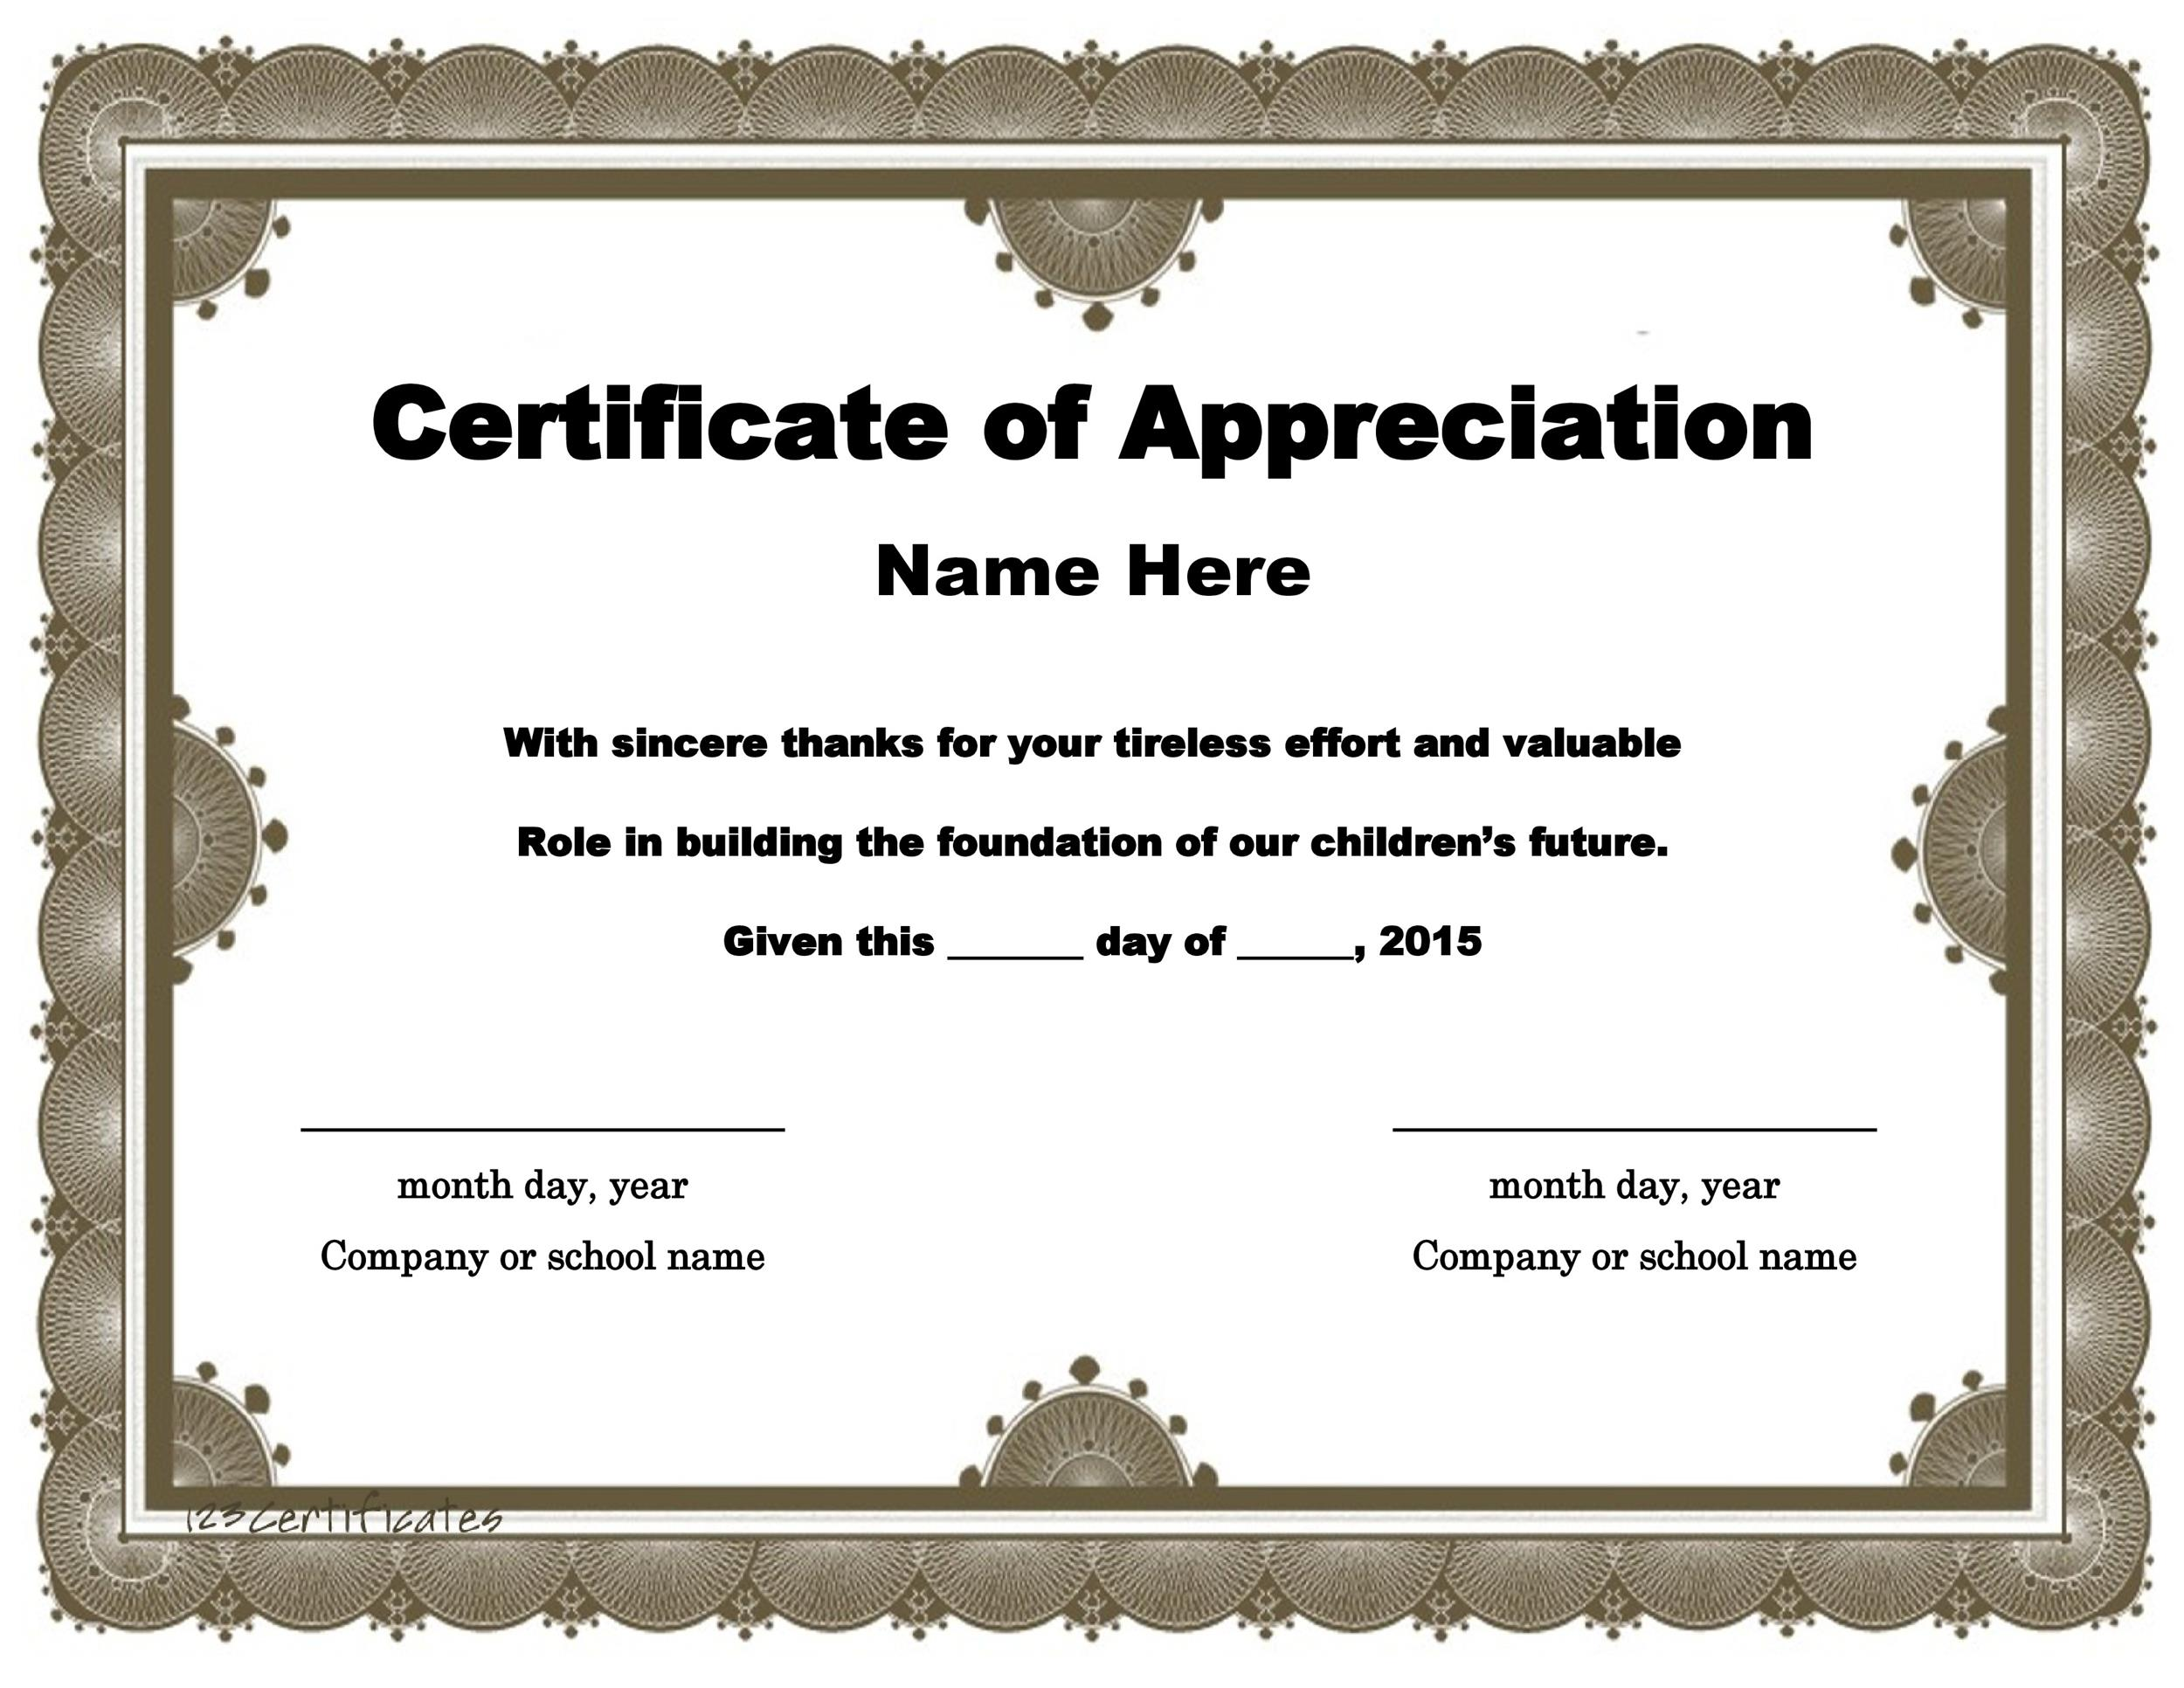 Certificates of appreciation examples yeniscale certificates of appreciation examples yelopaper